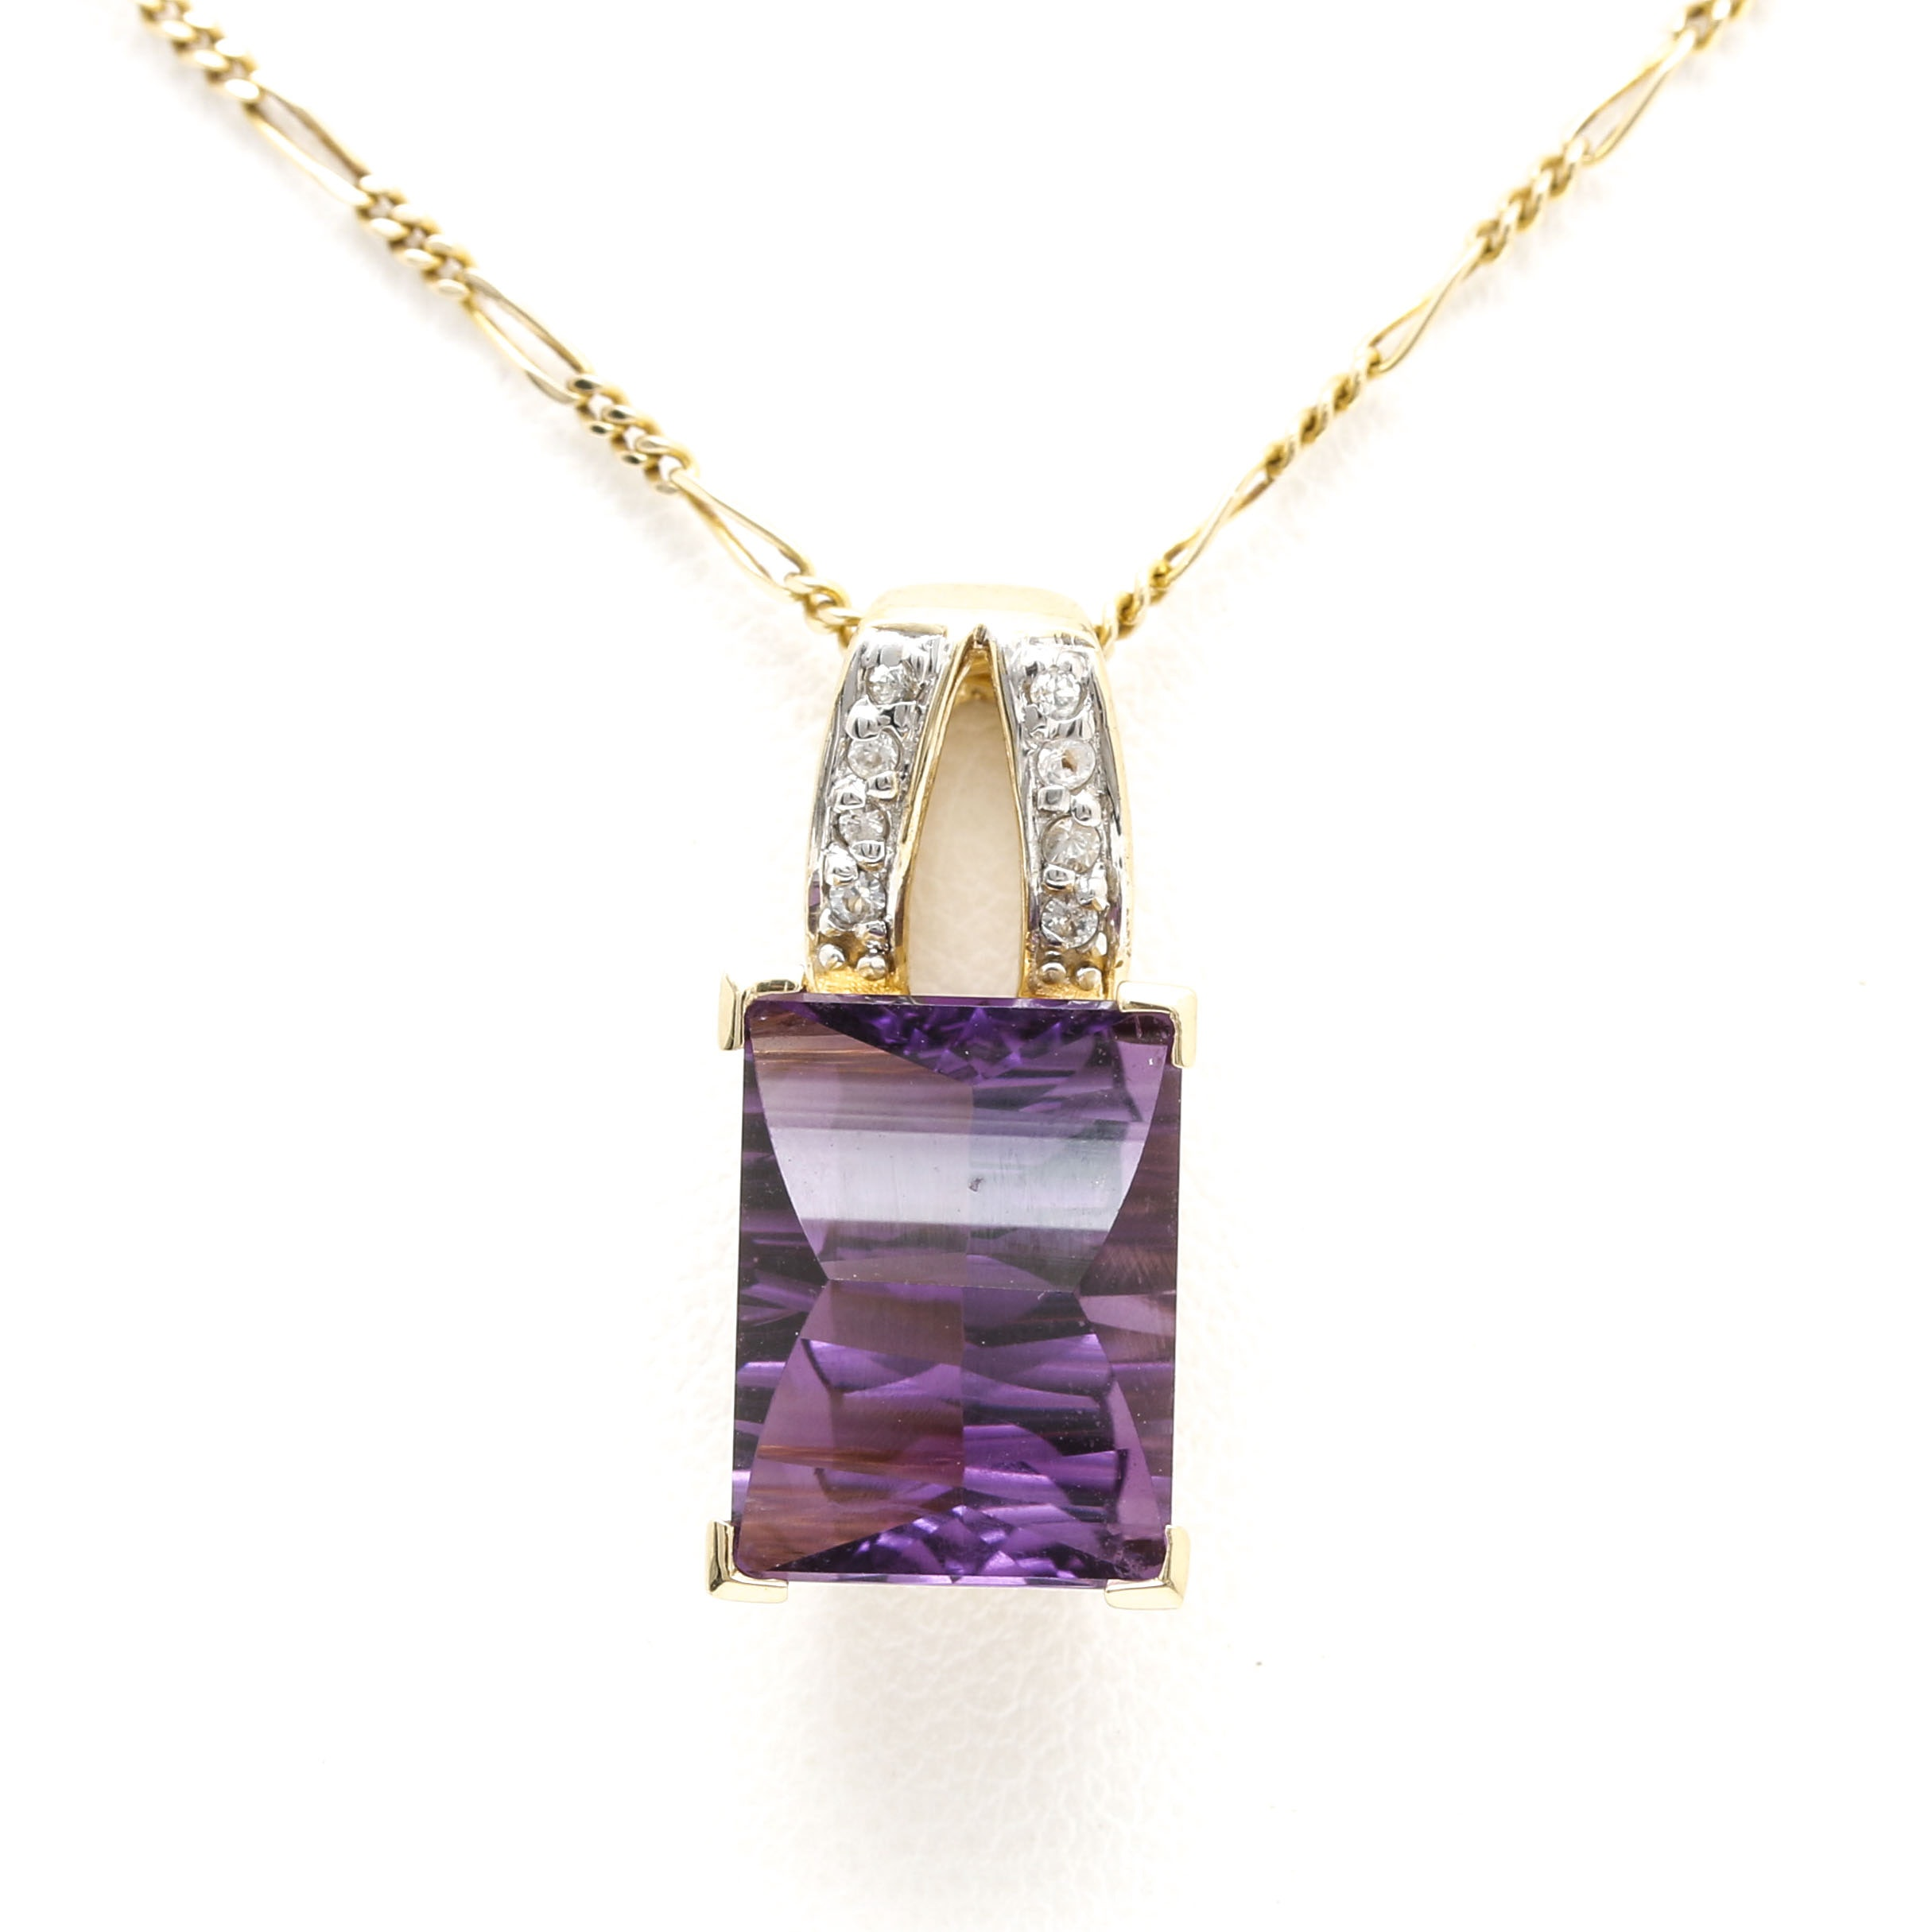 14K Yellow Gold Figaro Necklace and 10K Yellow Gold Amethyst and White Topaz Pendant